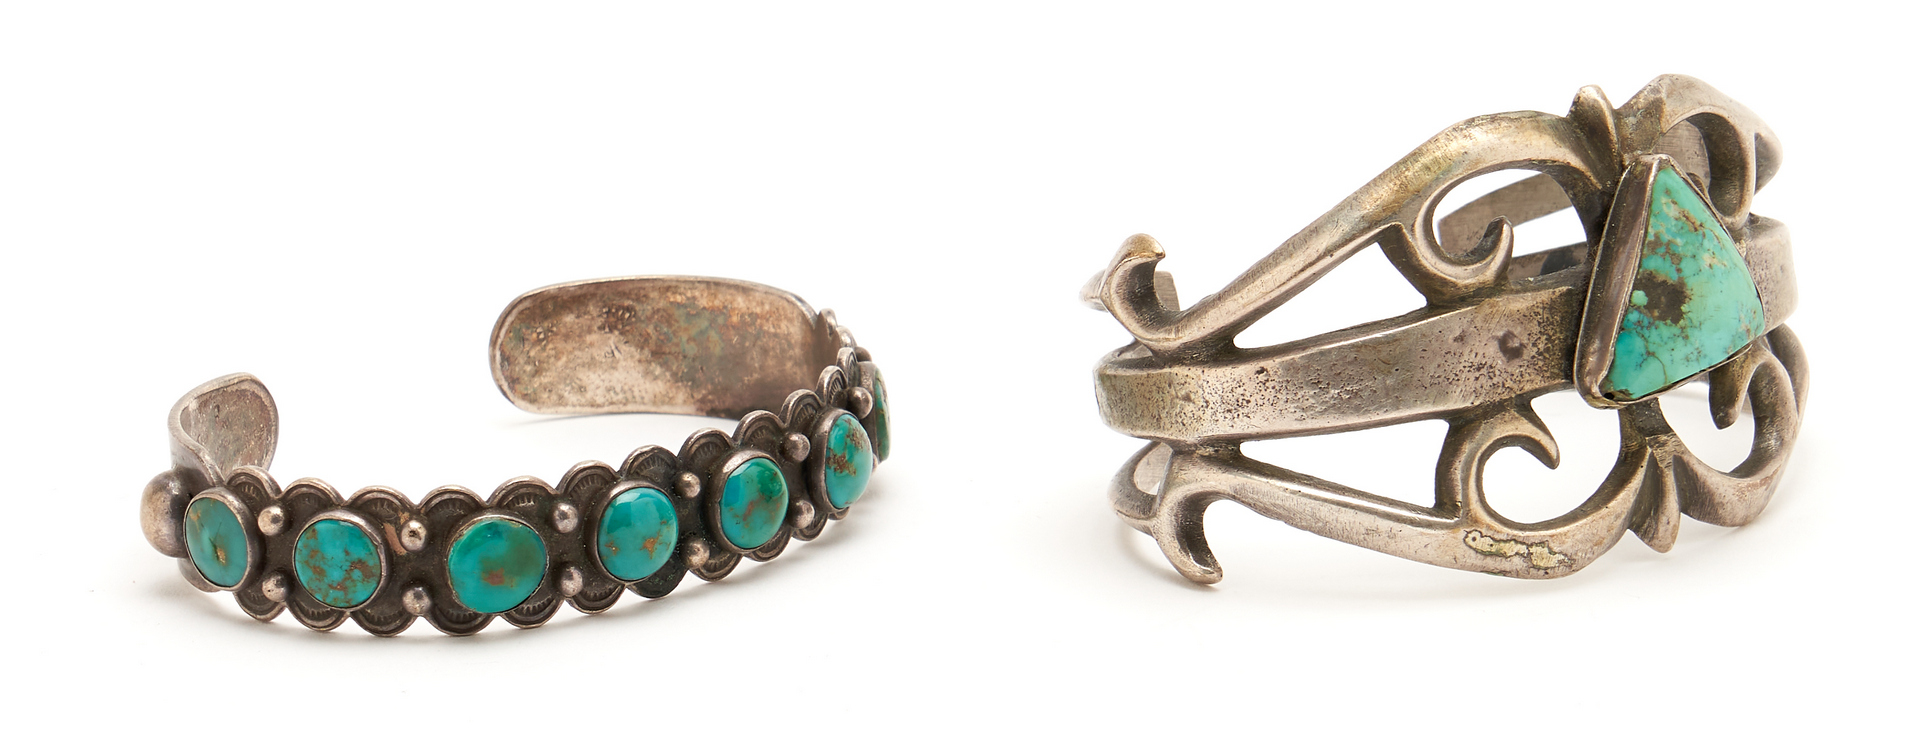 Lot 1096: 9 Native American Silver, Turquoise & Clay Jewelry Items